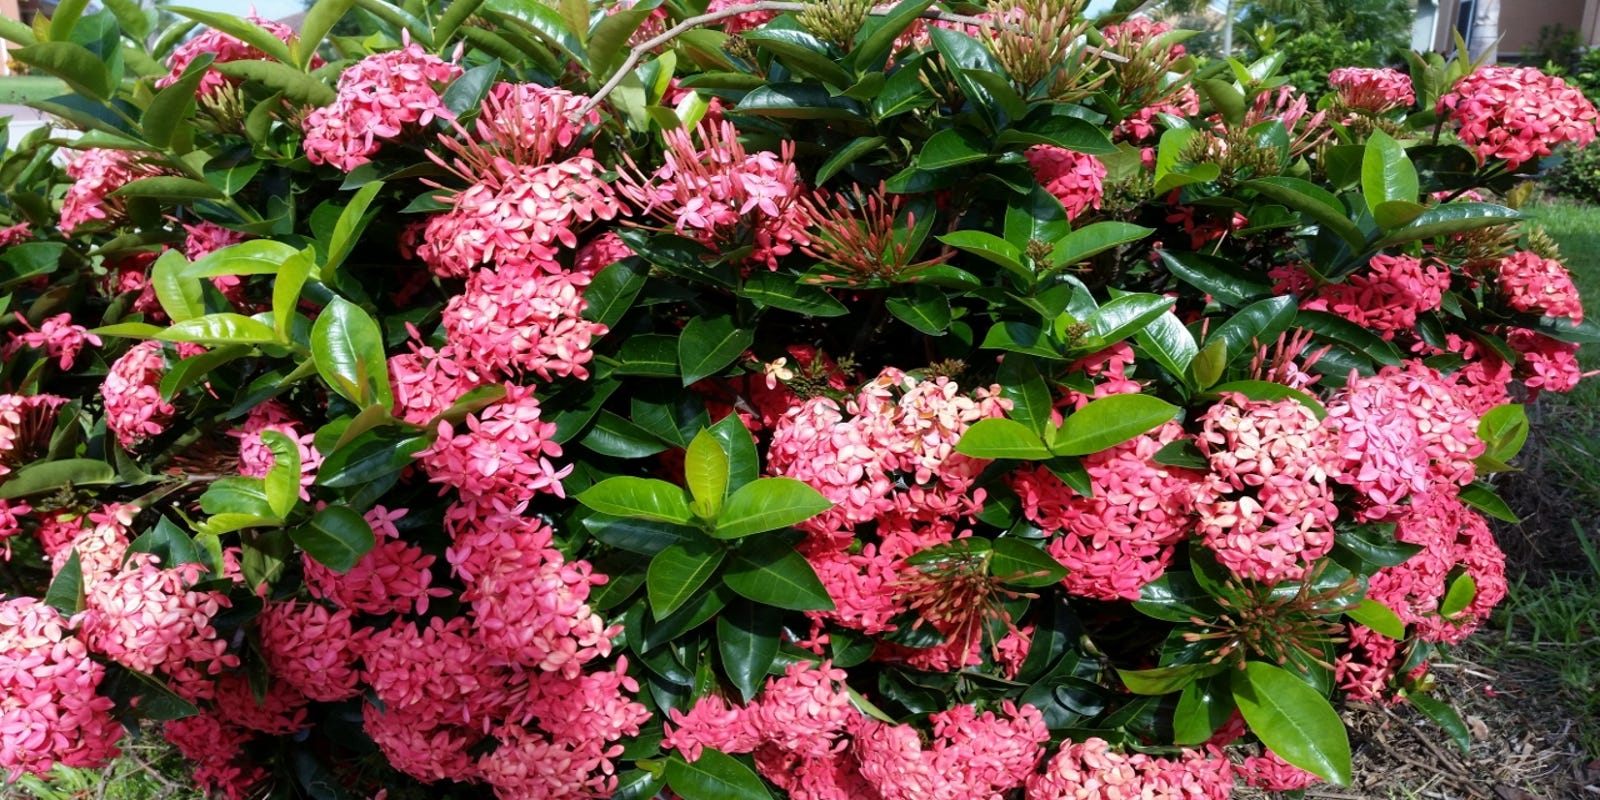 Ixora Shrubs Flourish In Summertime